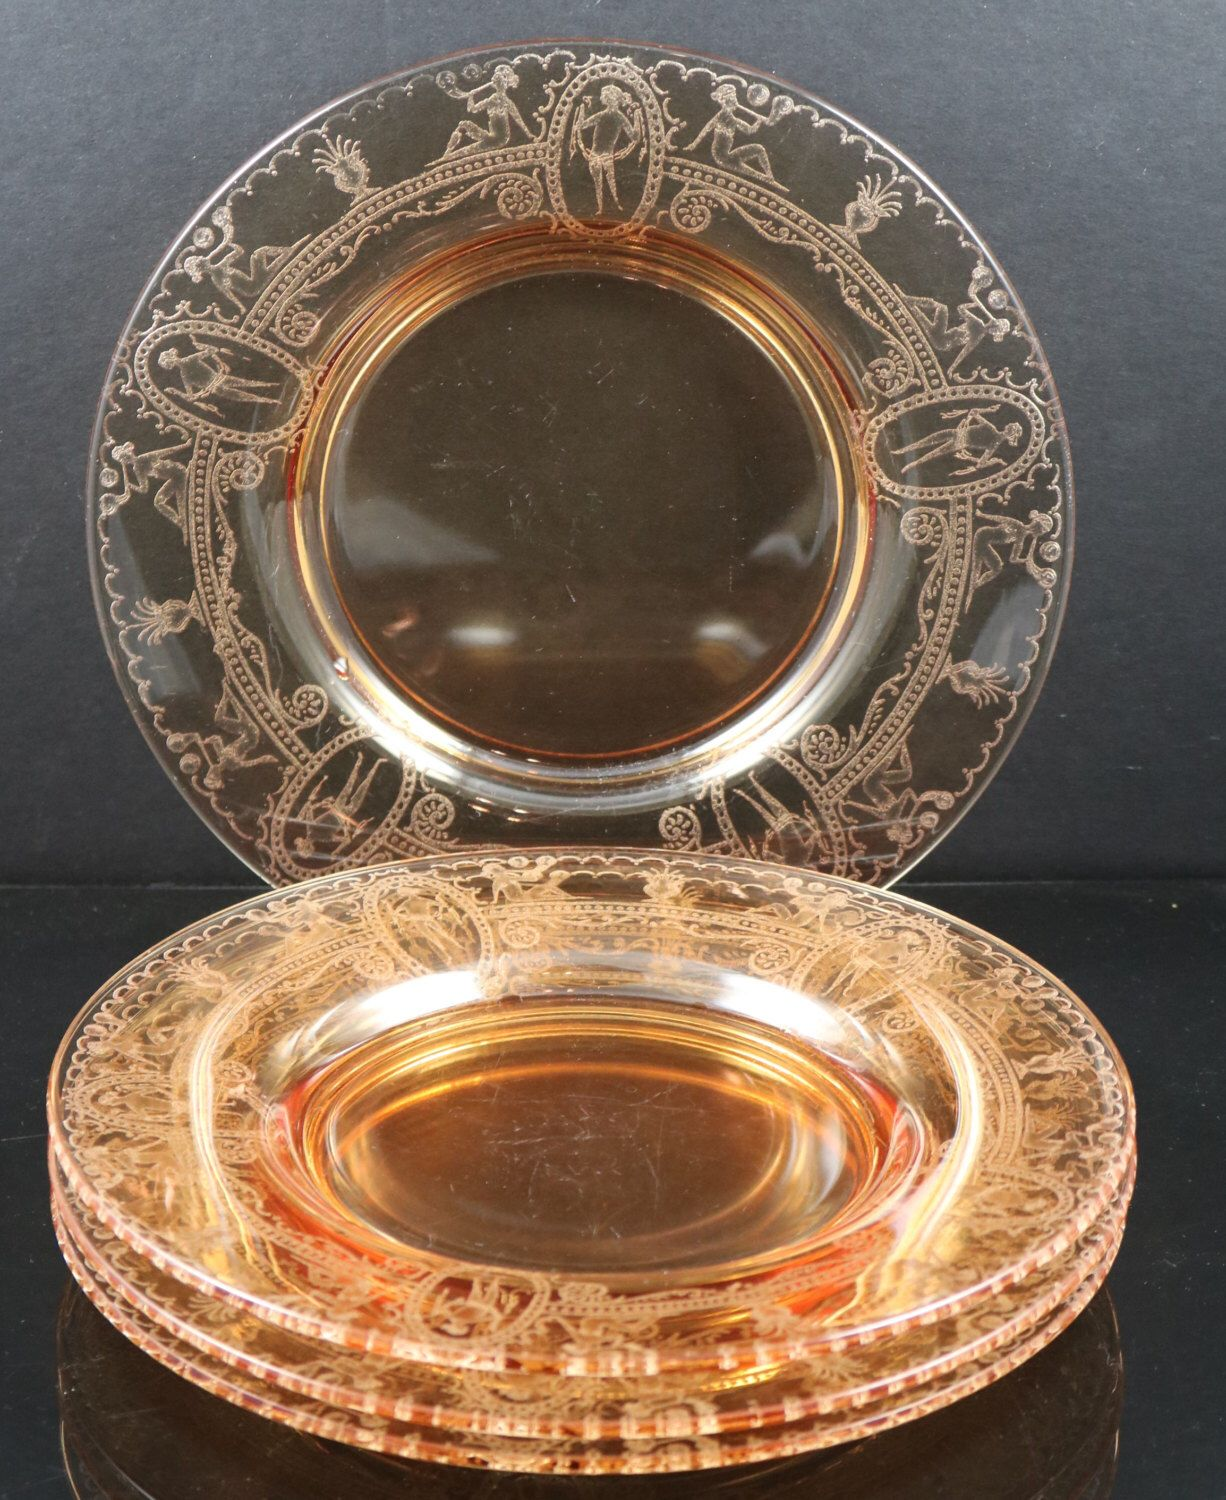 Set of 4 Vintage Bubble Girl Etch Amber 8.5 in. Elegant Depression Glass Plates Set No. 1 by greencreekfarm on Etsy ... & Set of 4 Vintage Bubble Girl Etch Amber 8.5 in. Elegant Depression ...